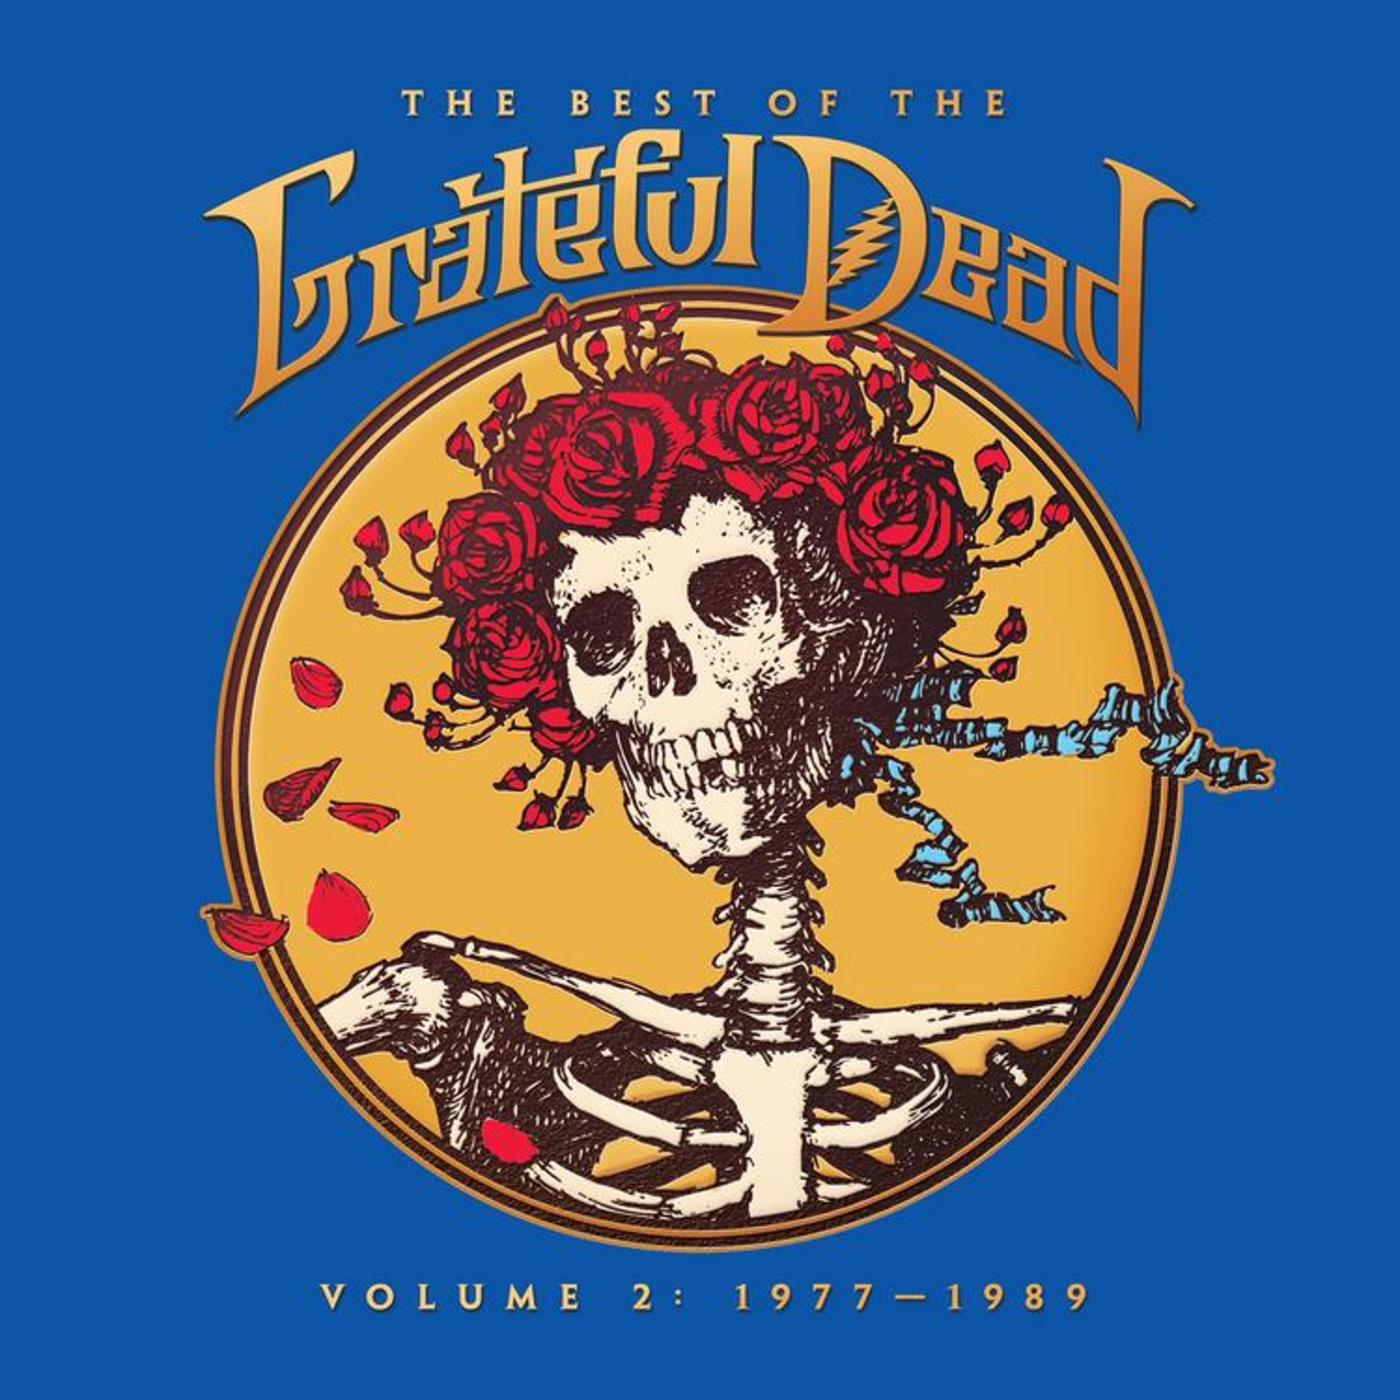 Grateful Dead The Best Of The Grateful Dead Vol 2 1977